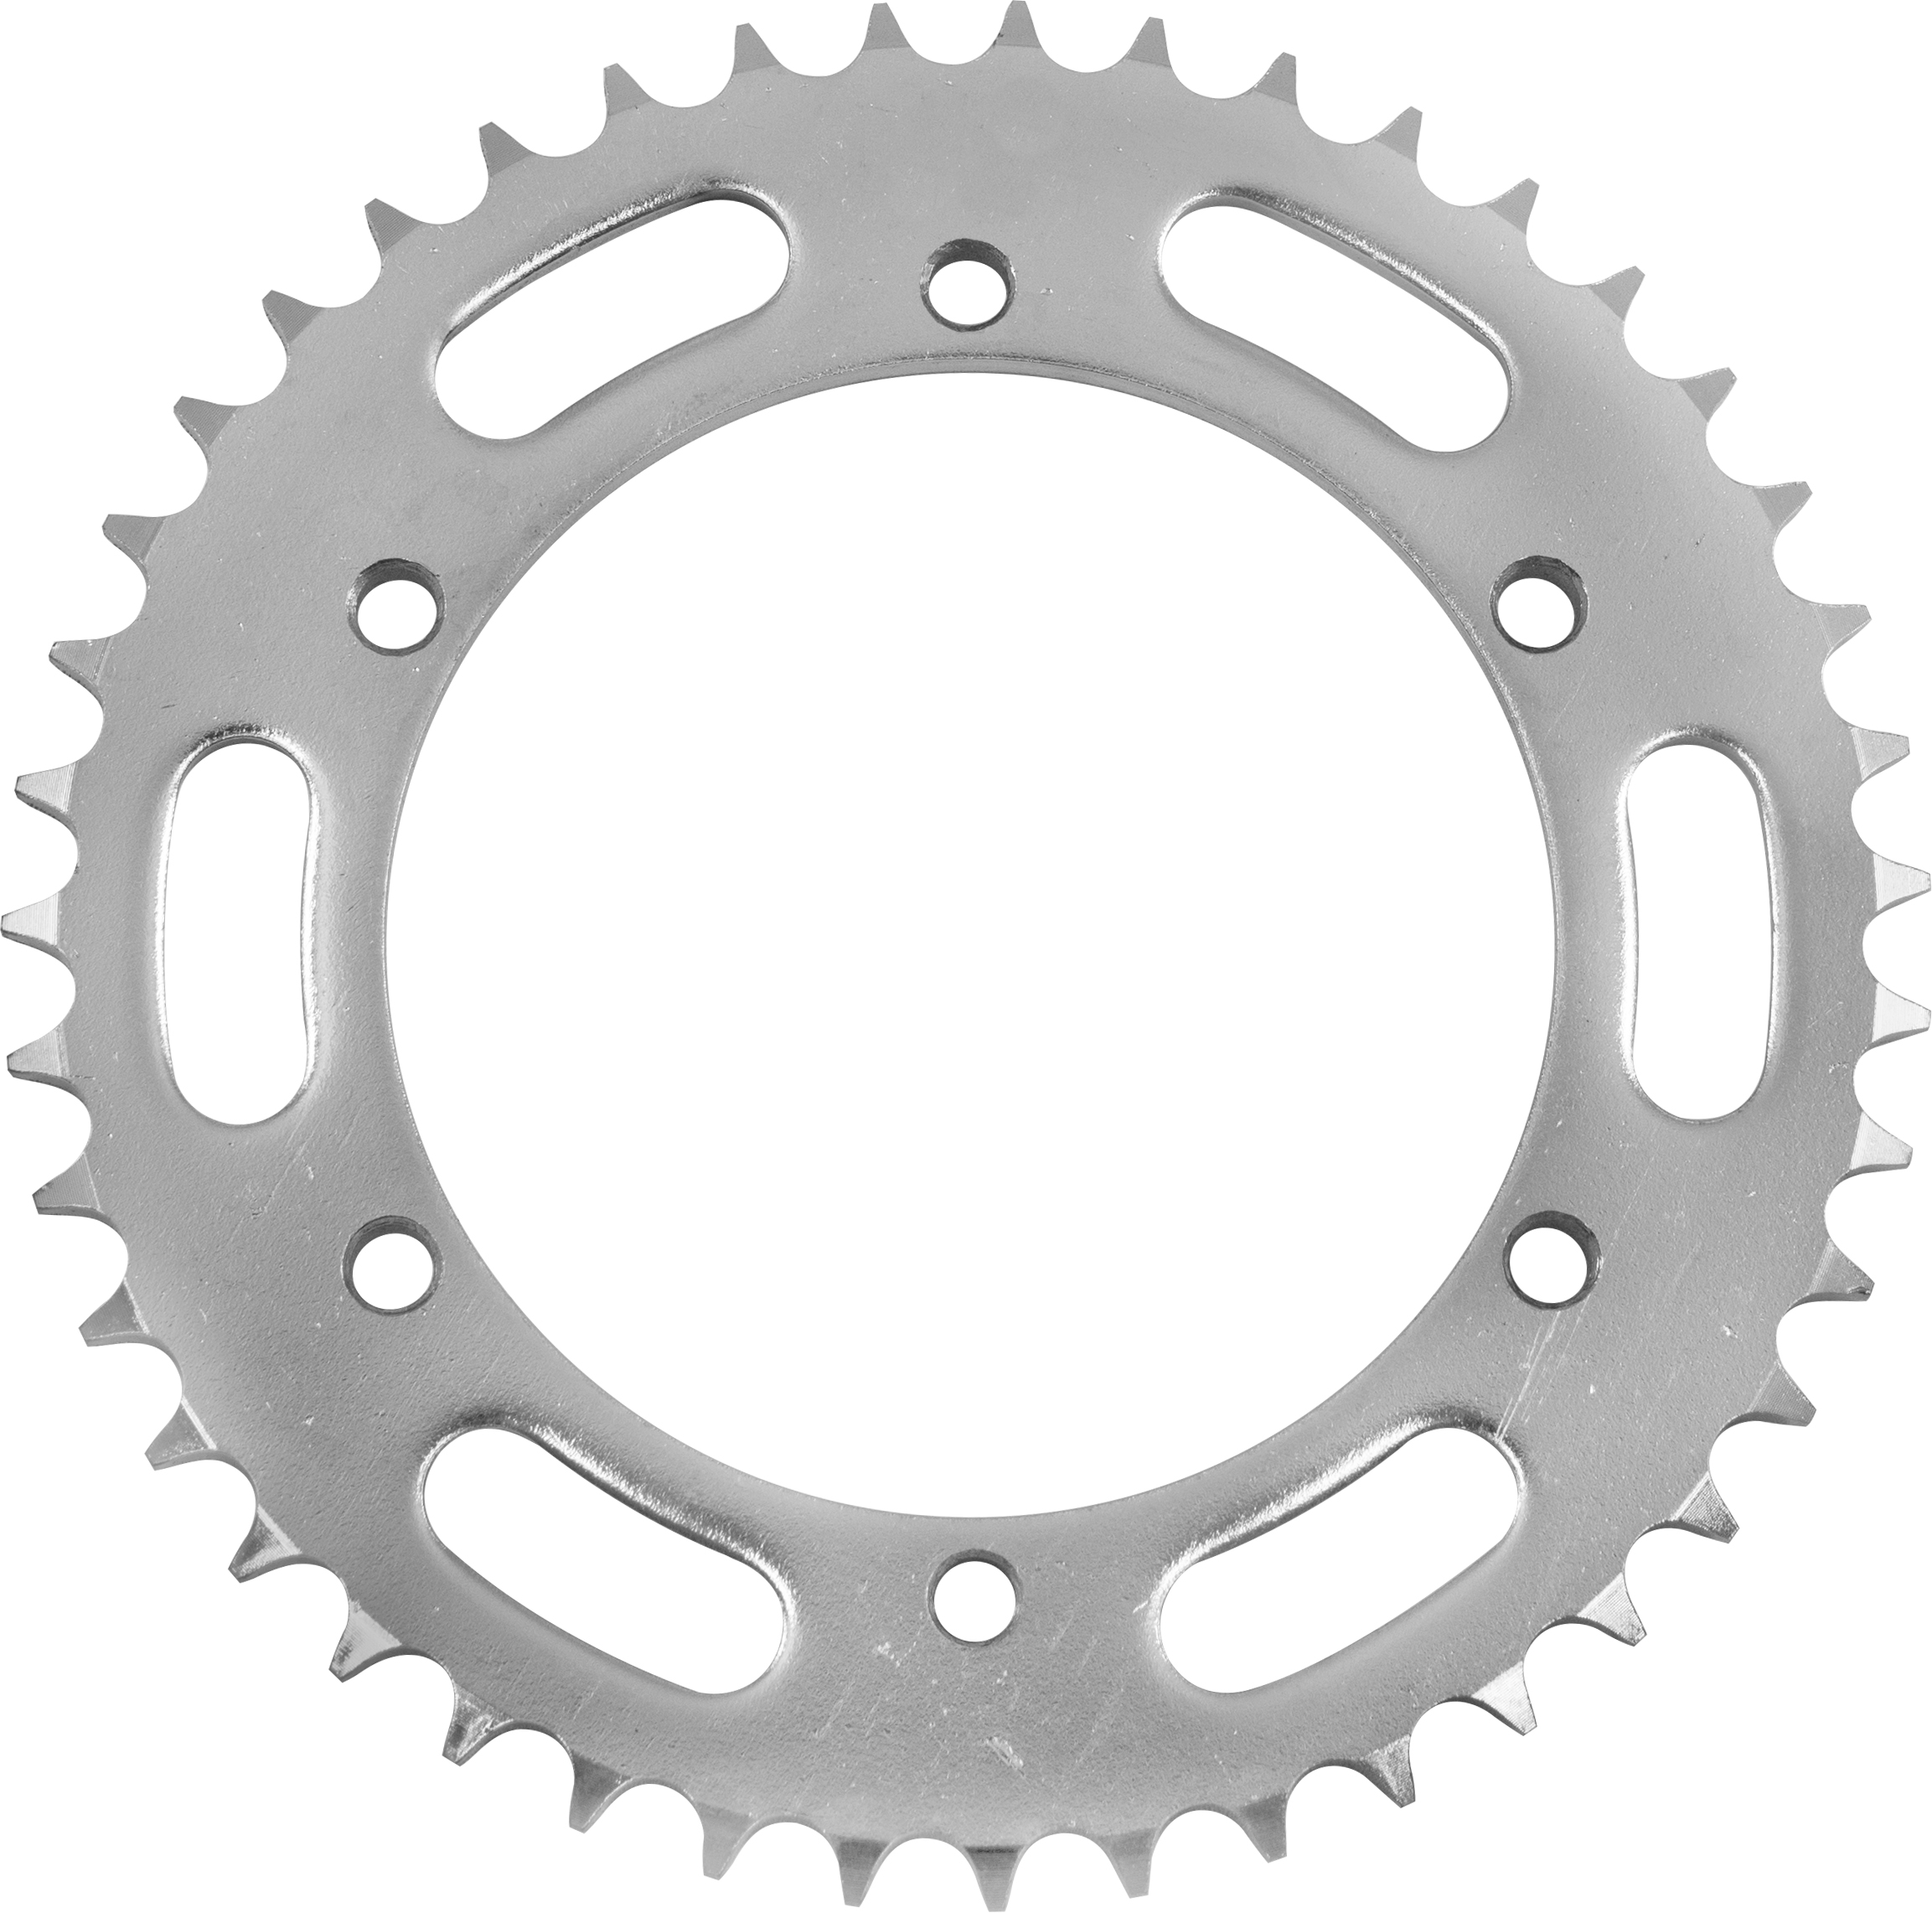 696-43 REAR SPROCKET CAGIVA PRIMA 50